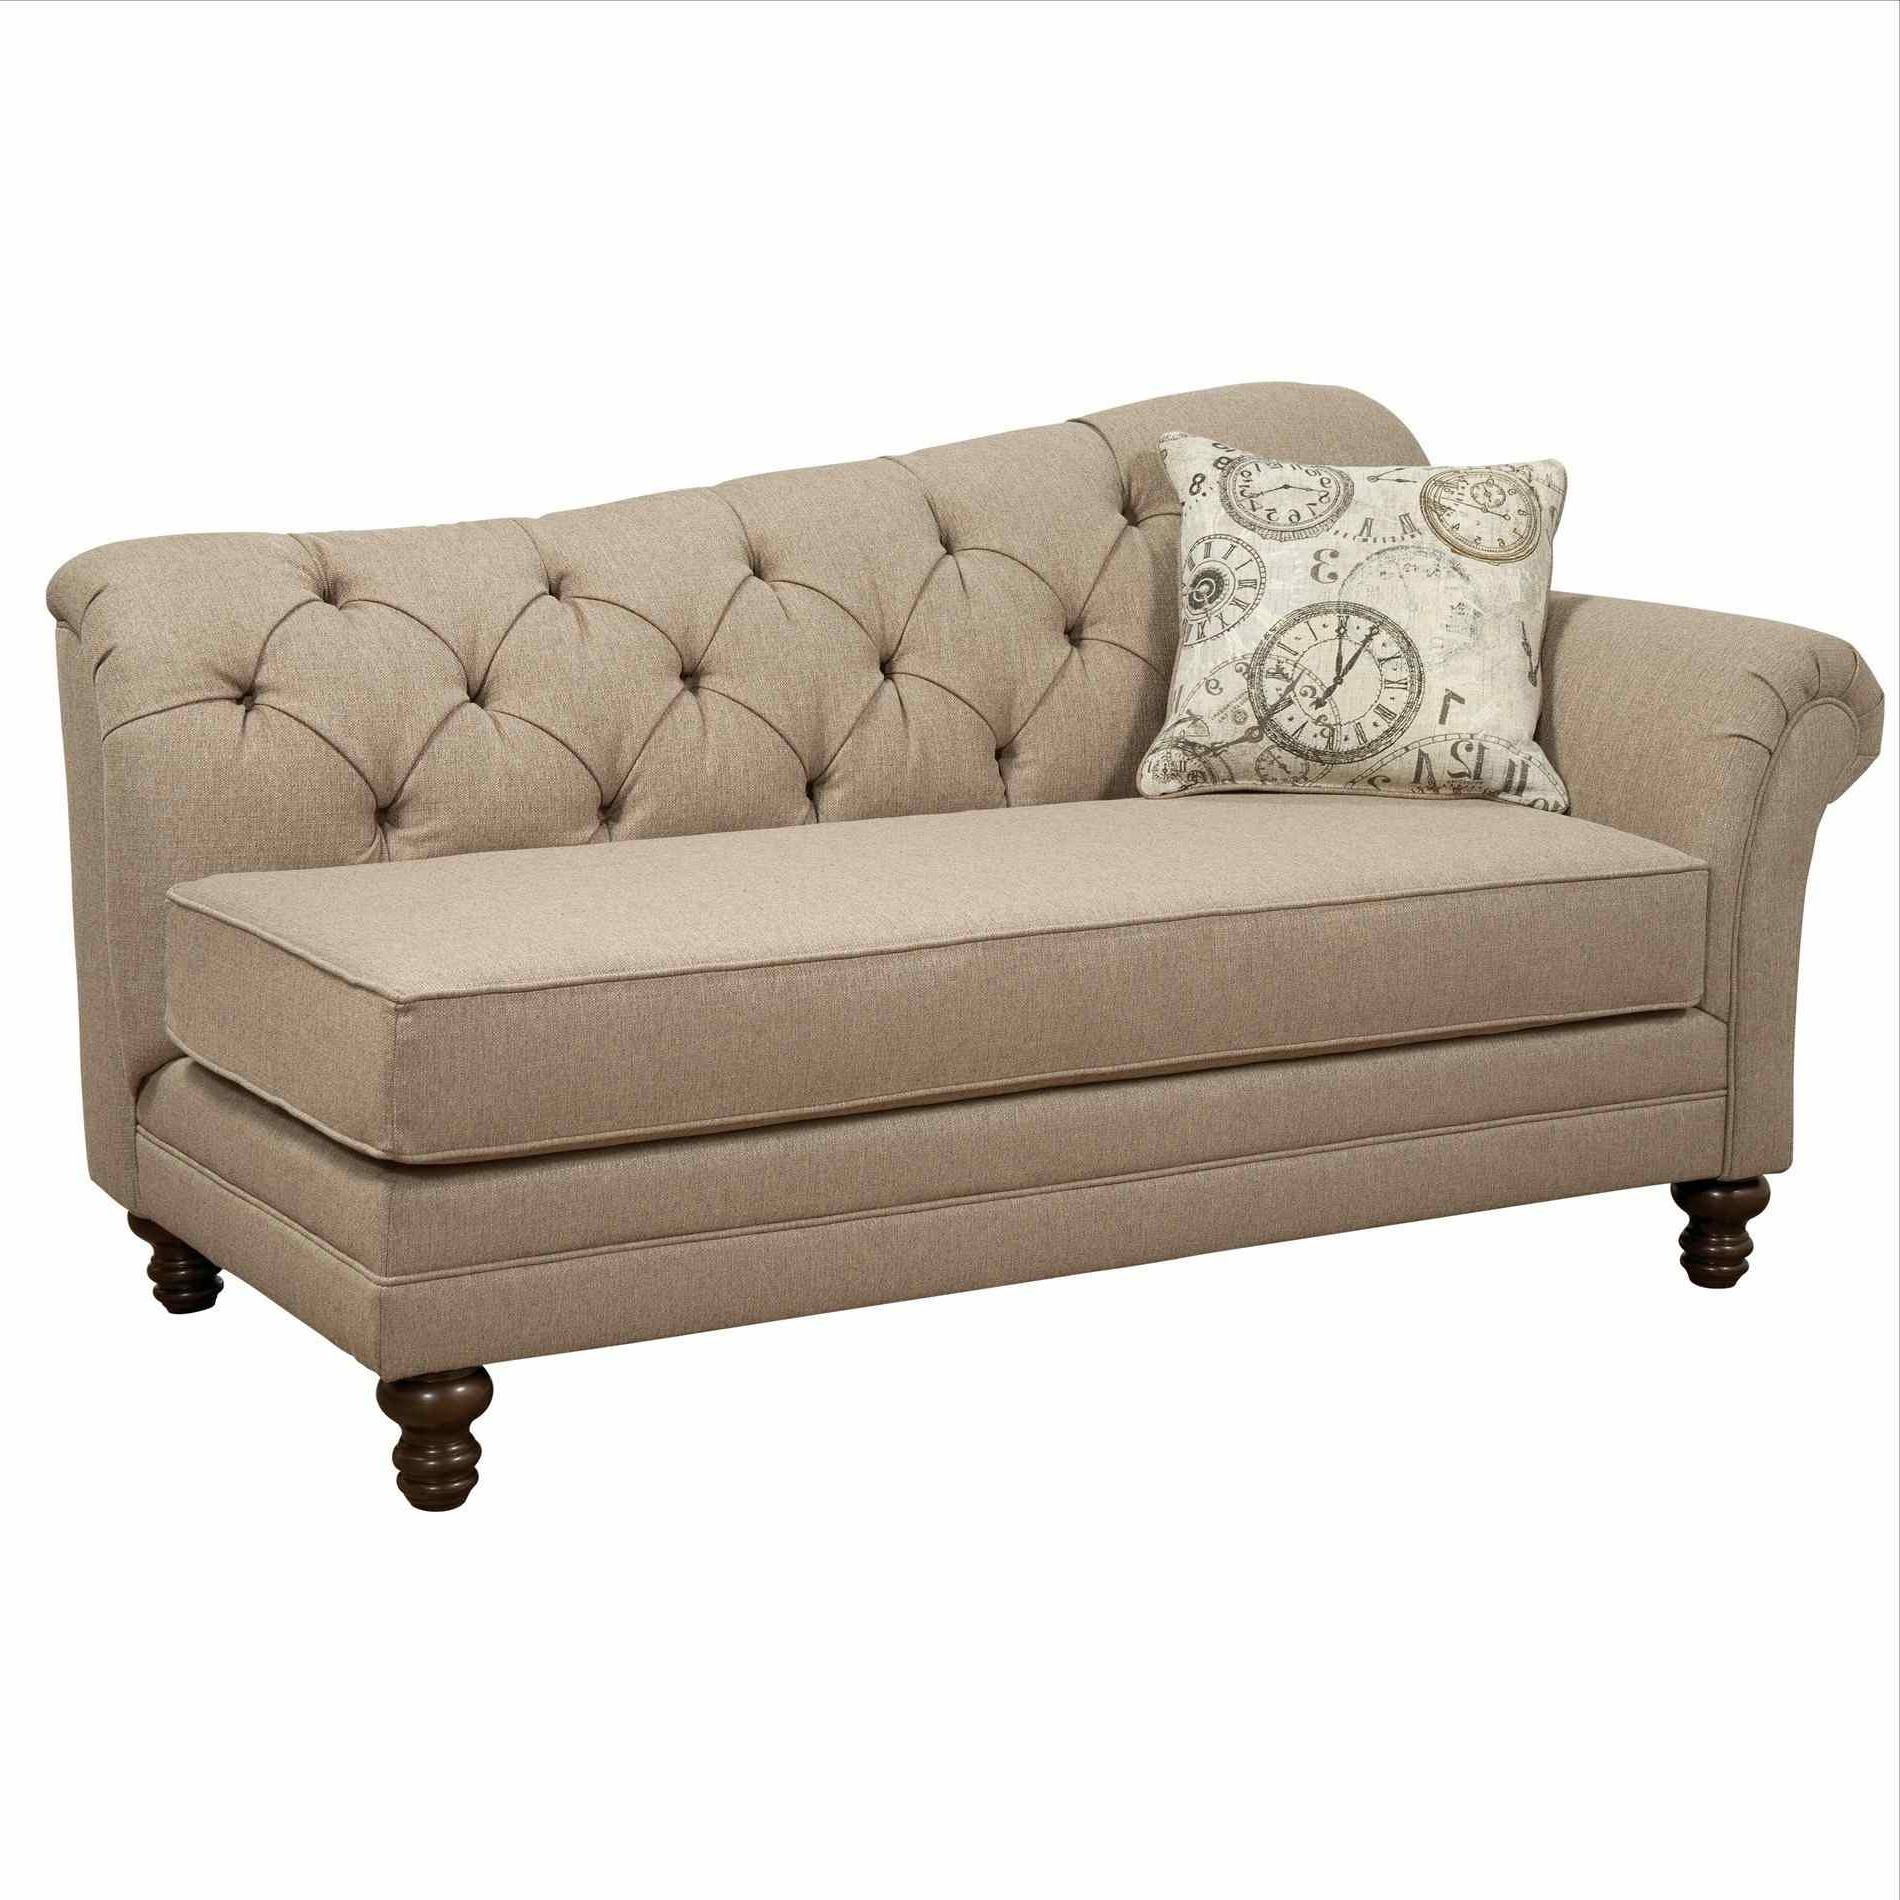 Old Fashioned Sofas With Most Popular Sofa : Old Fashioned Sofa Sofas (View 12 of 15)